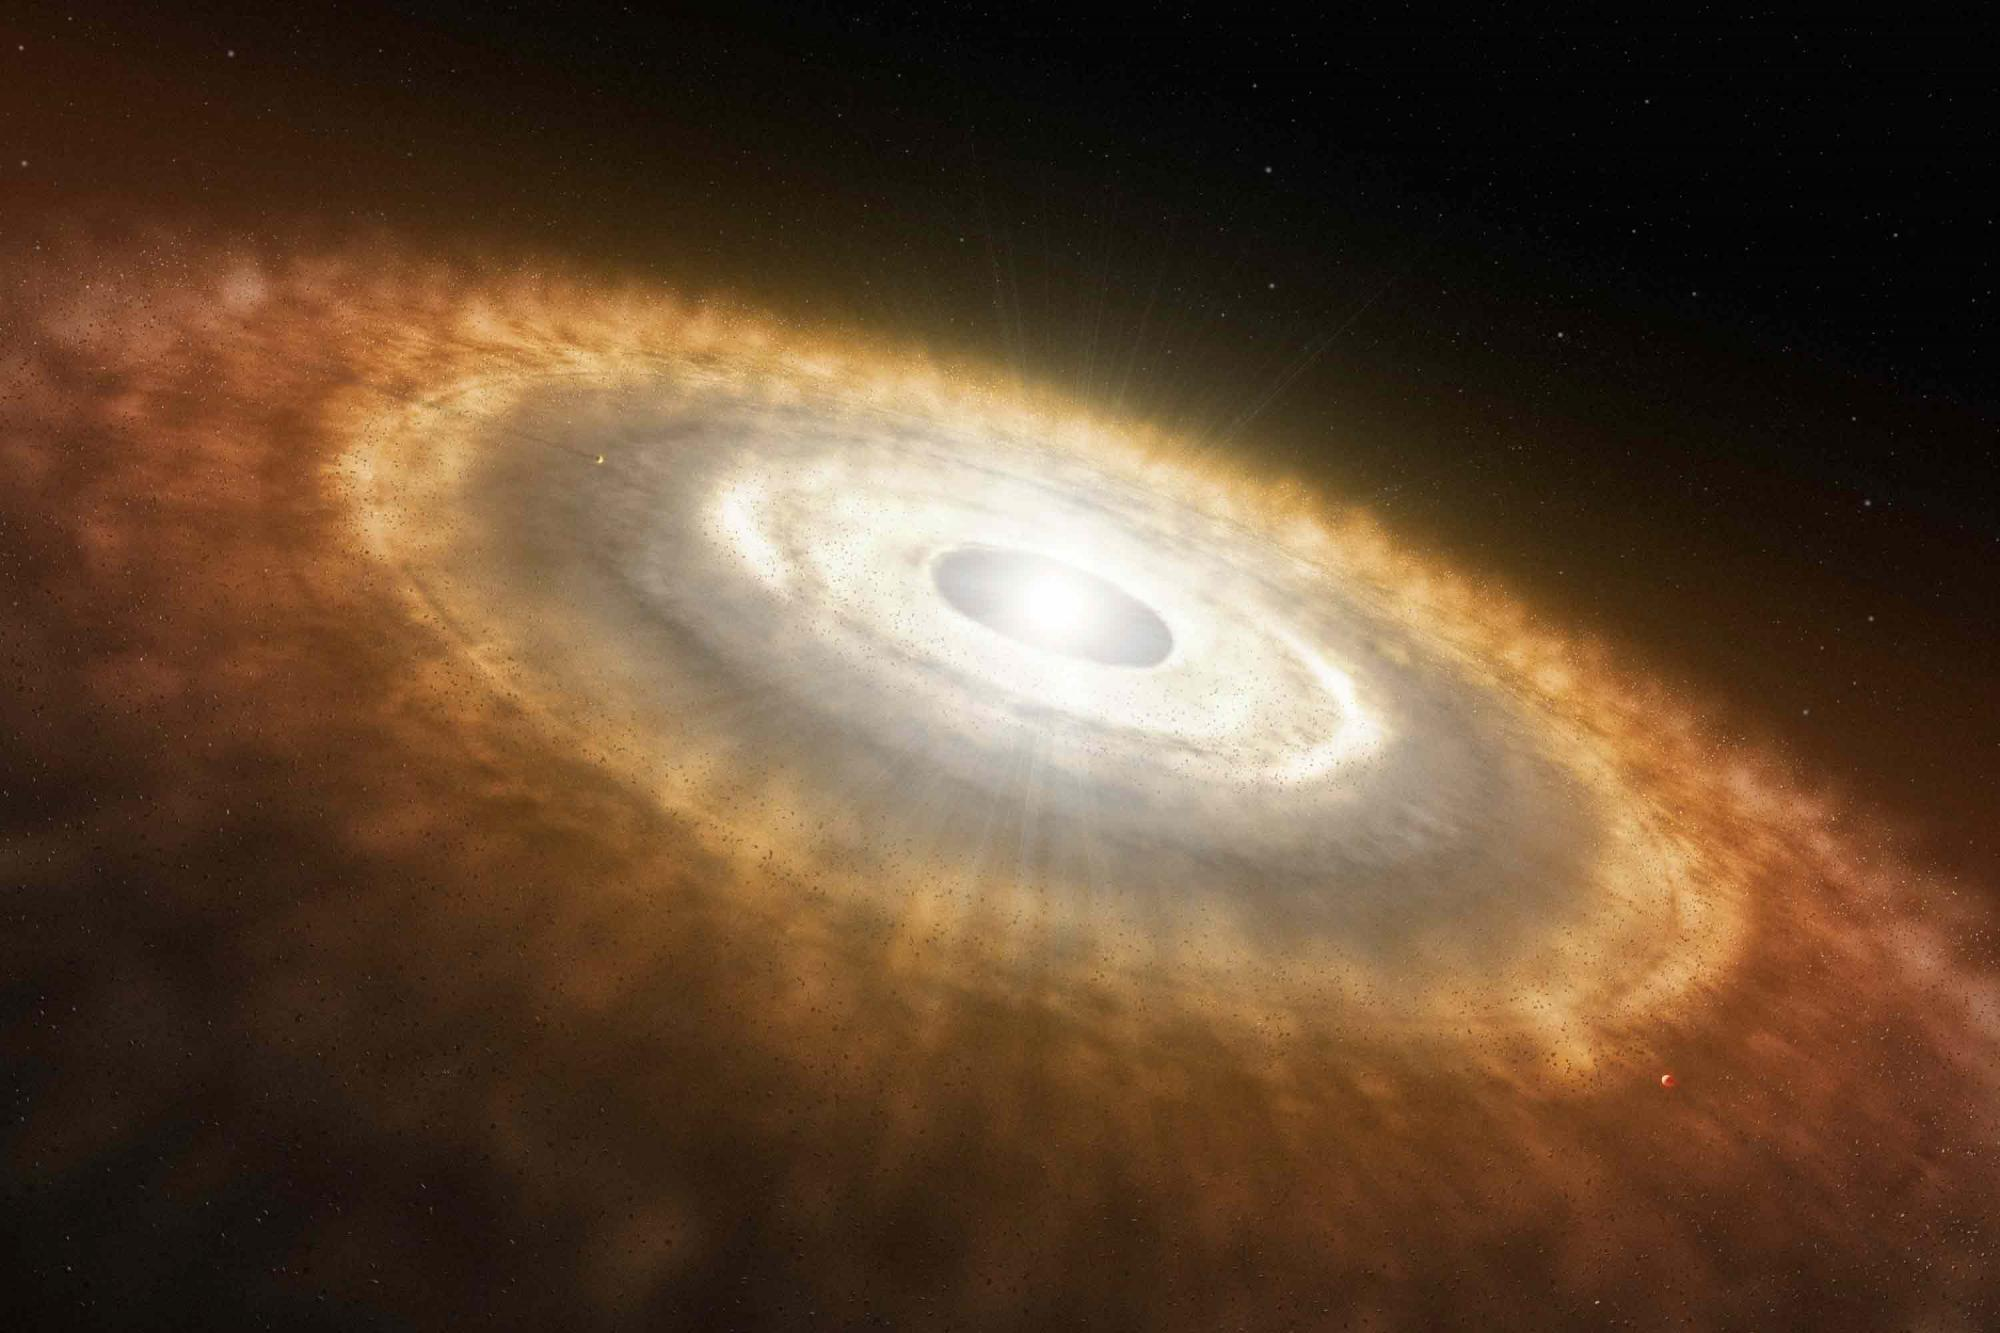 "Like a raindrop forming in a cloud, a star forms in a diffuse gas cloud in deep space. As the star grows, its gravitational pull draws in dust and gas from the surrounding molecular cloud to form a swirling disk called a ""protoplanetary disk."" This disk e"